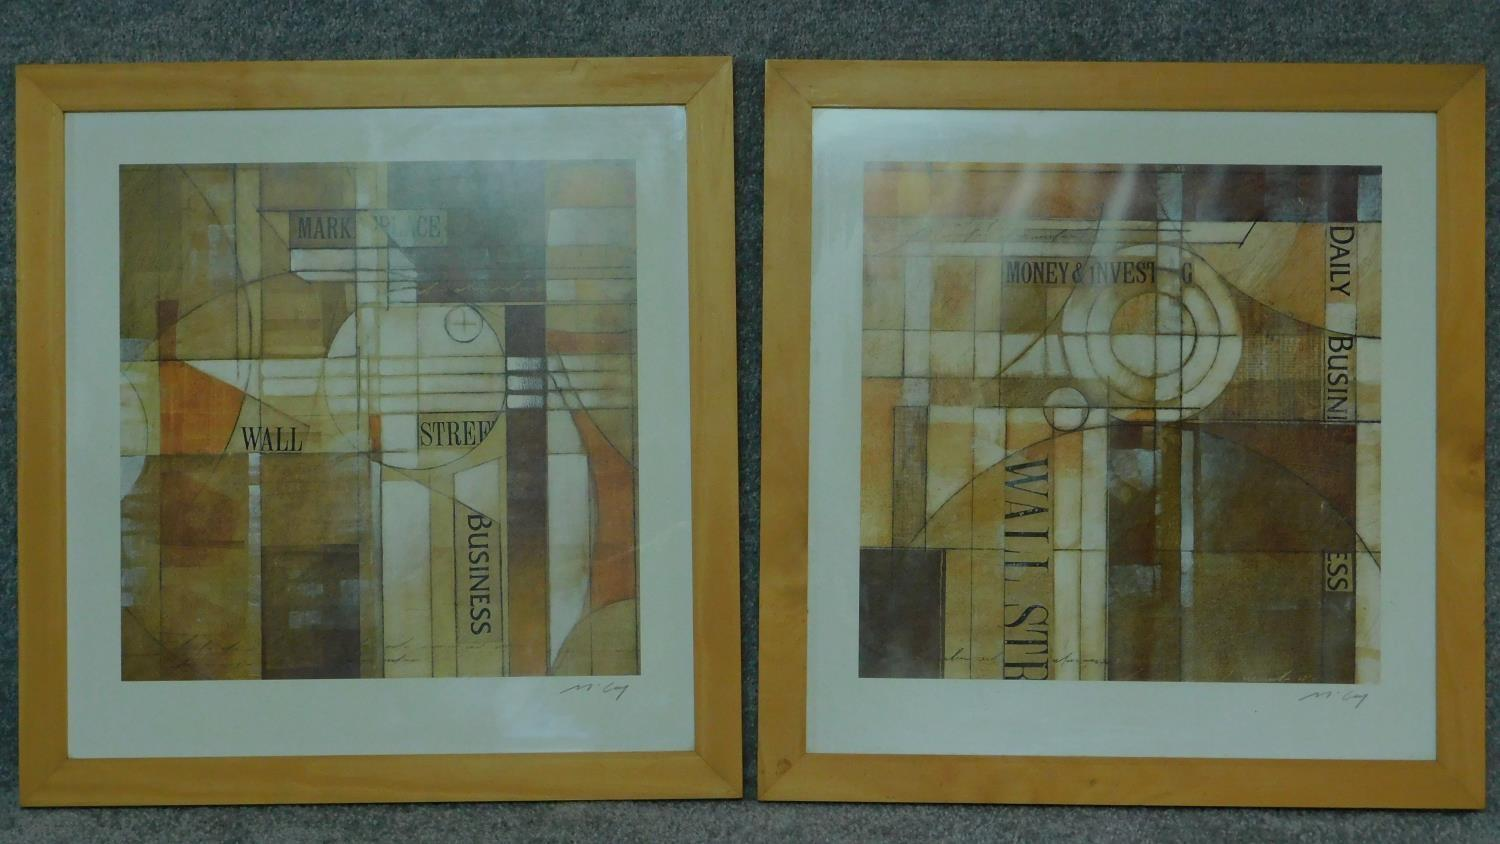 A pair of framed and glazed prints, cubist style Wall Street Journal. 65.5x63.5cm